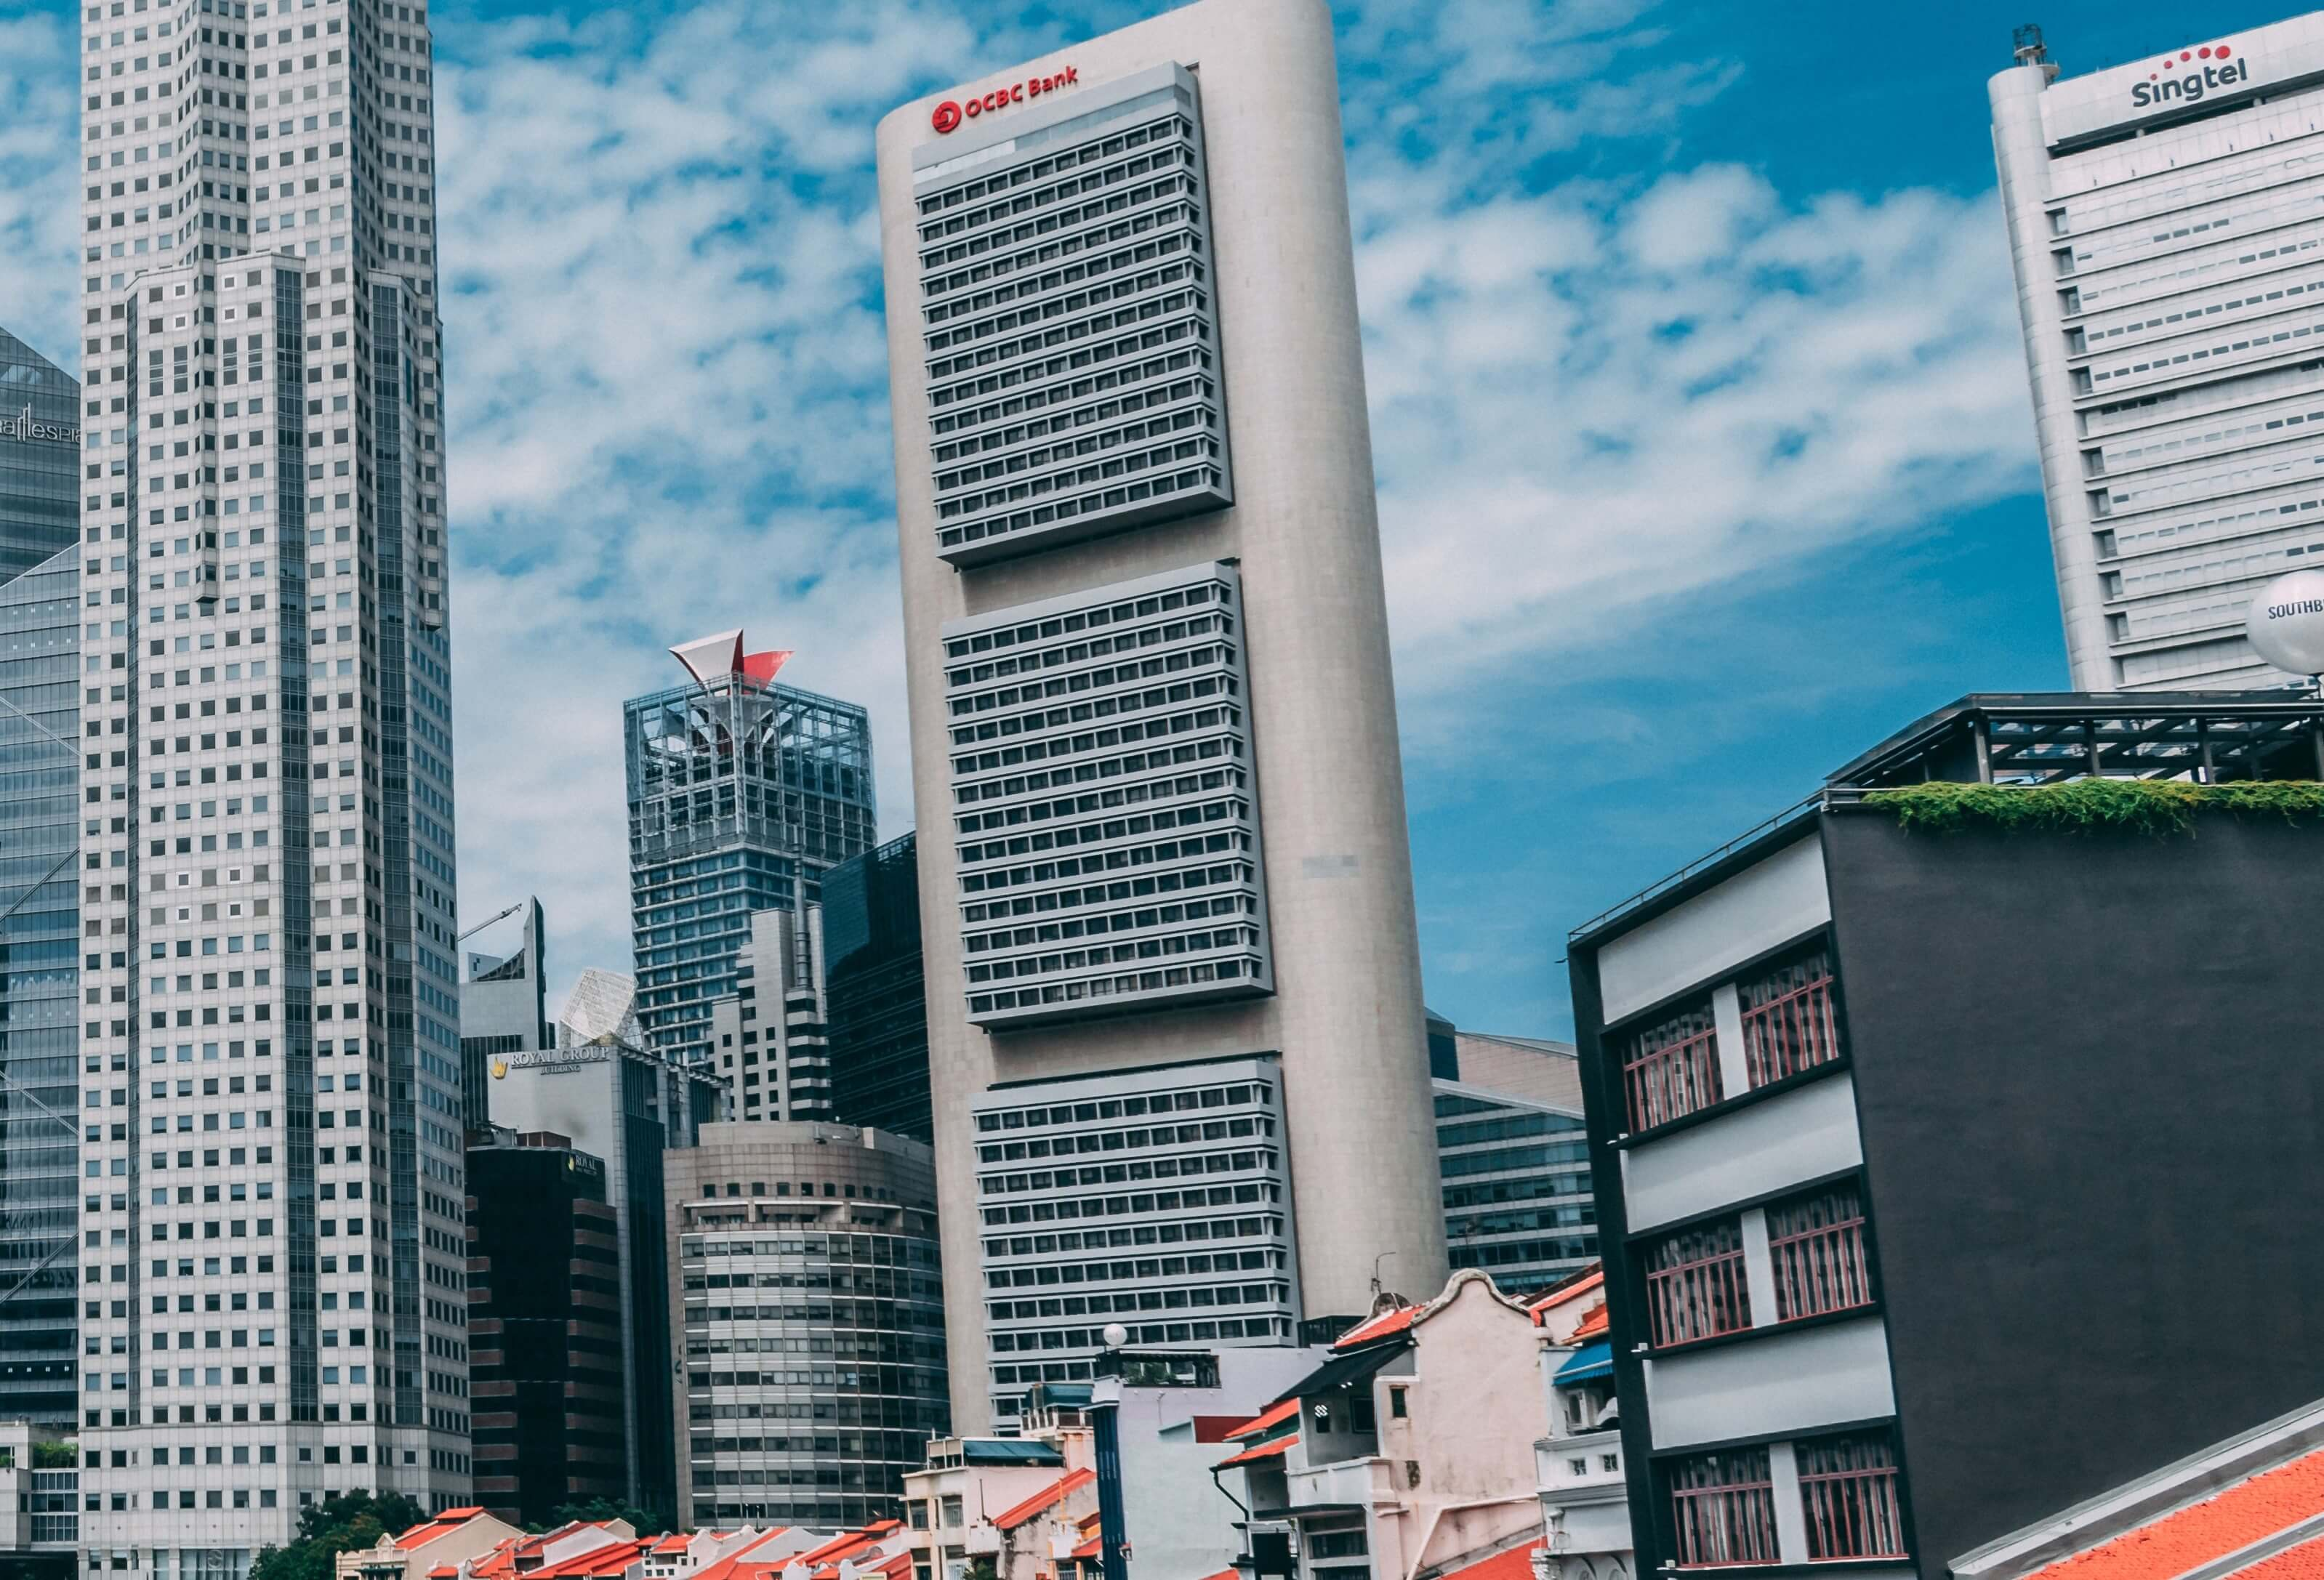 Pay falls and headcount flatlines as OCBC clamps down on costs